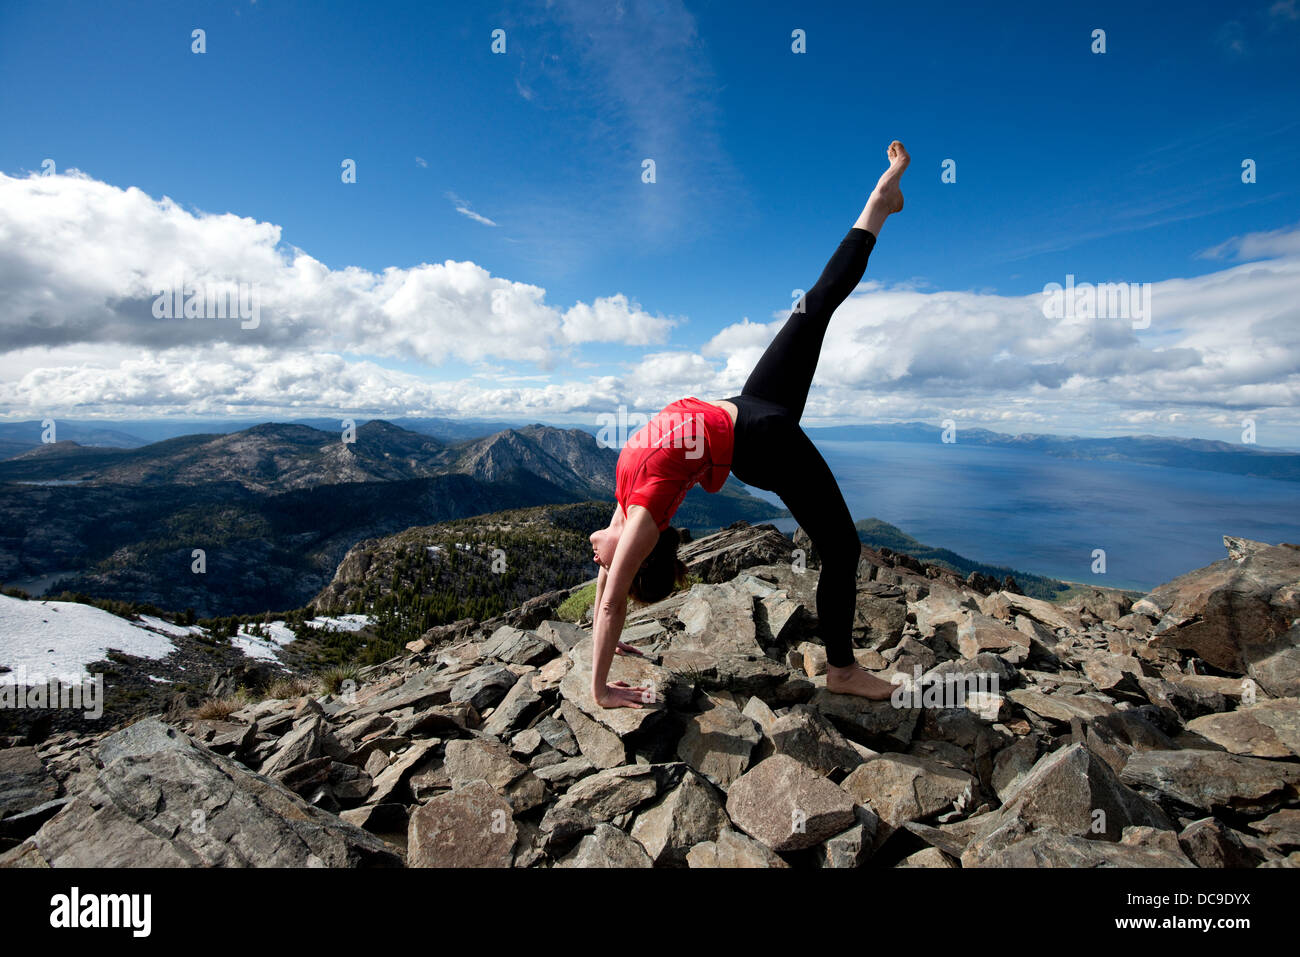 A Woman Performs Yoga On Top Of Mount Tallac Overlooking Lake Tahoe Stock Photo Alamy